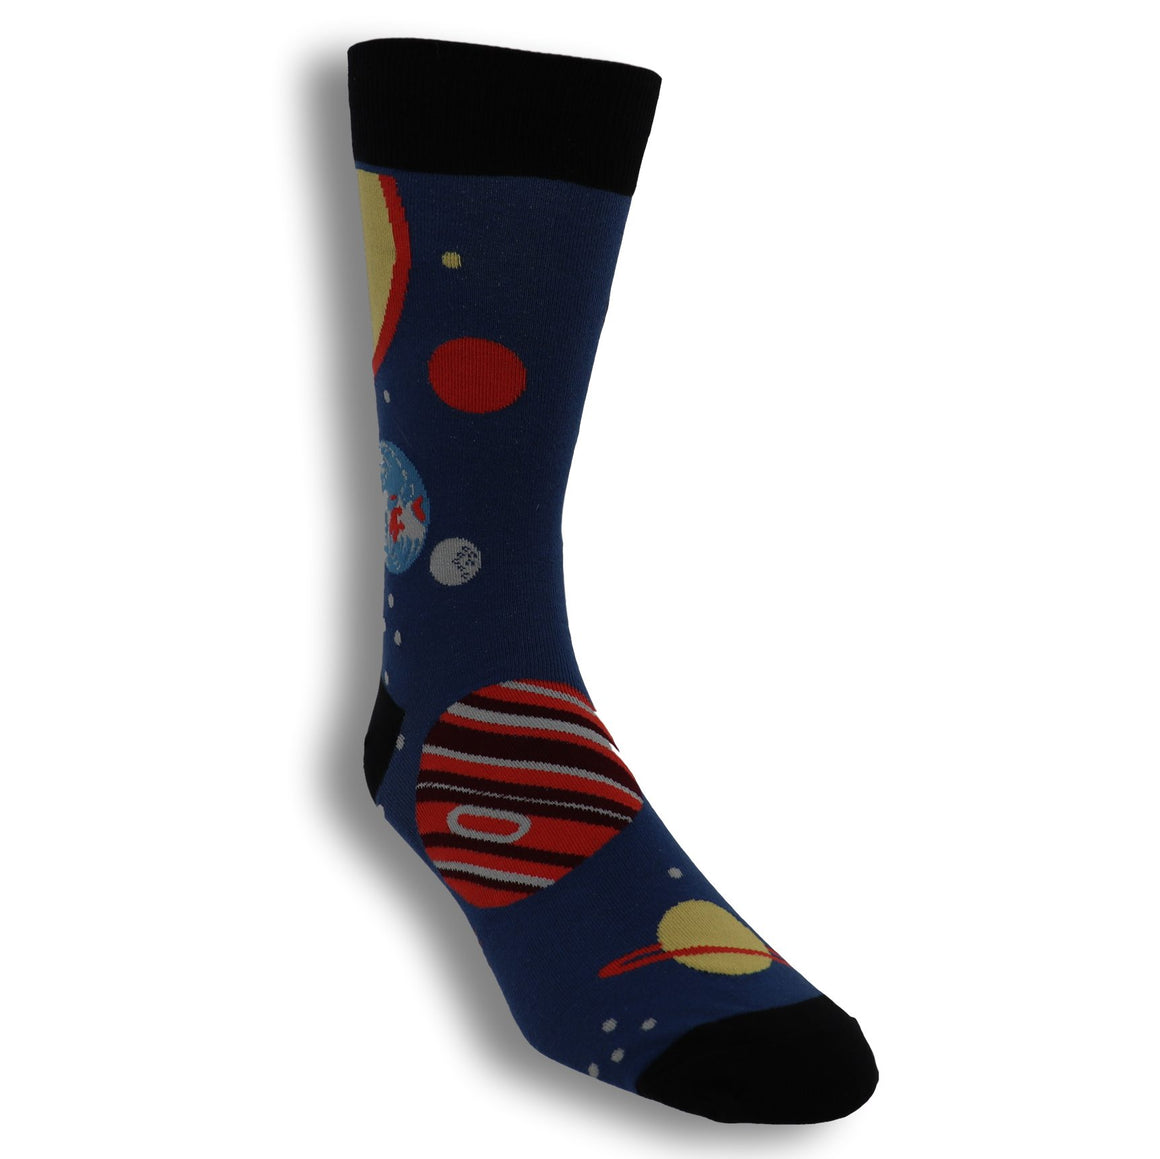 Planets Socks by Sock it to Me - The Sock Spot